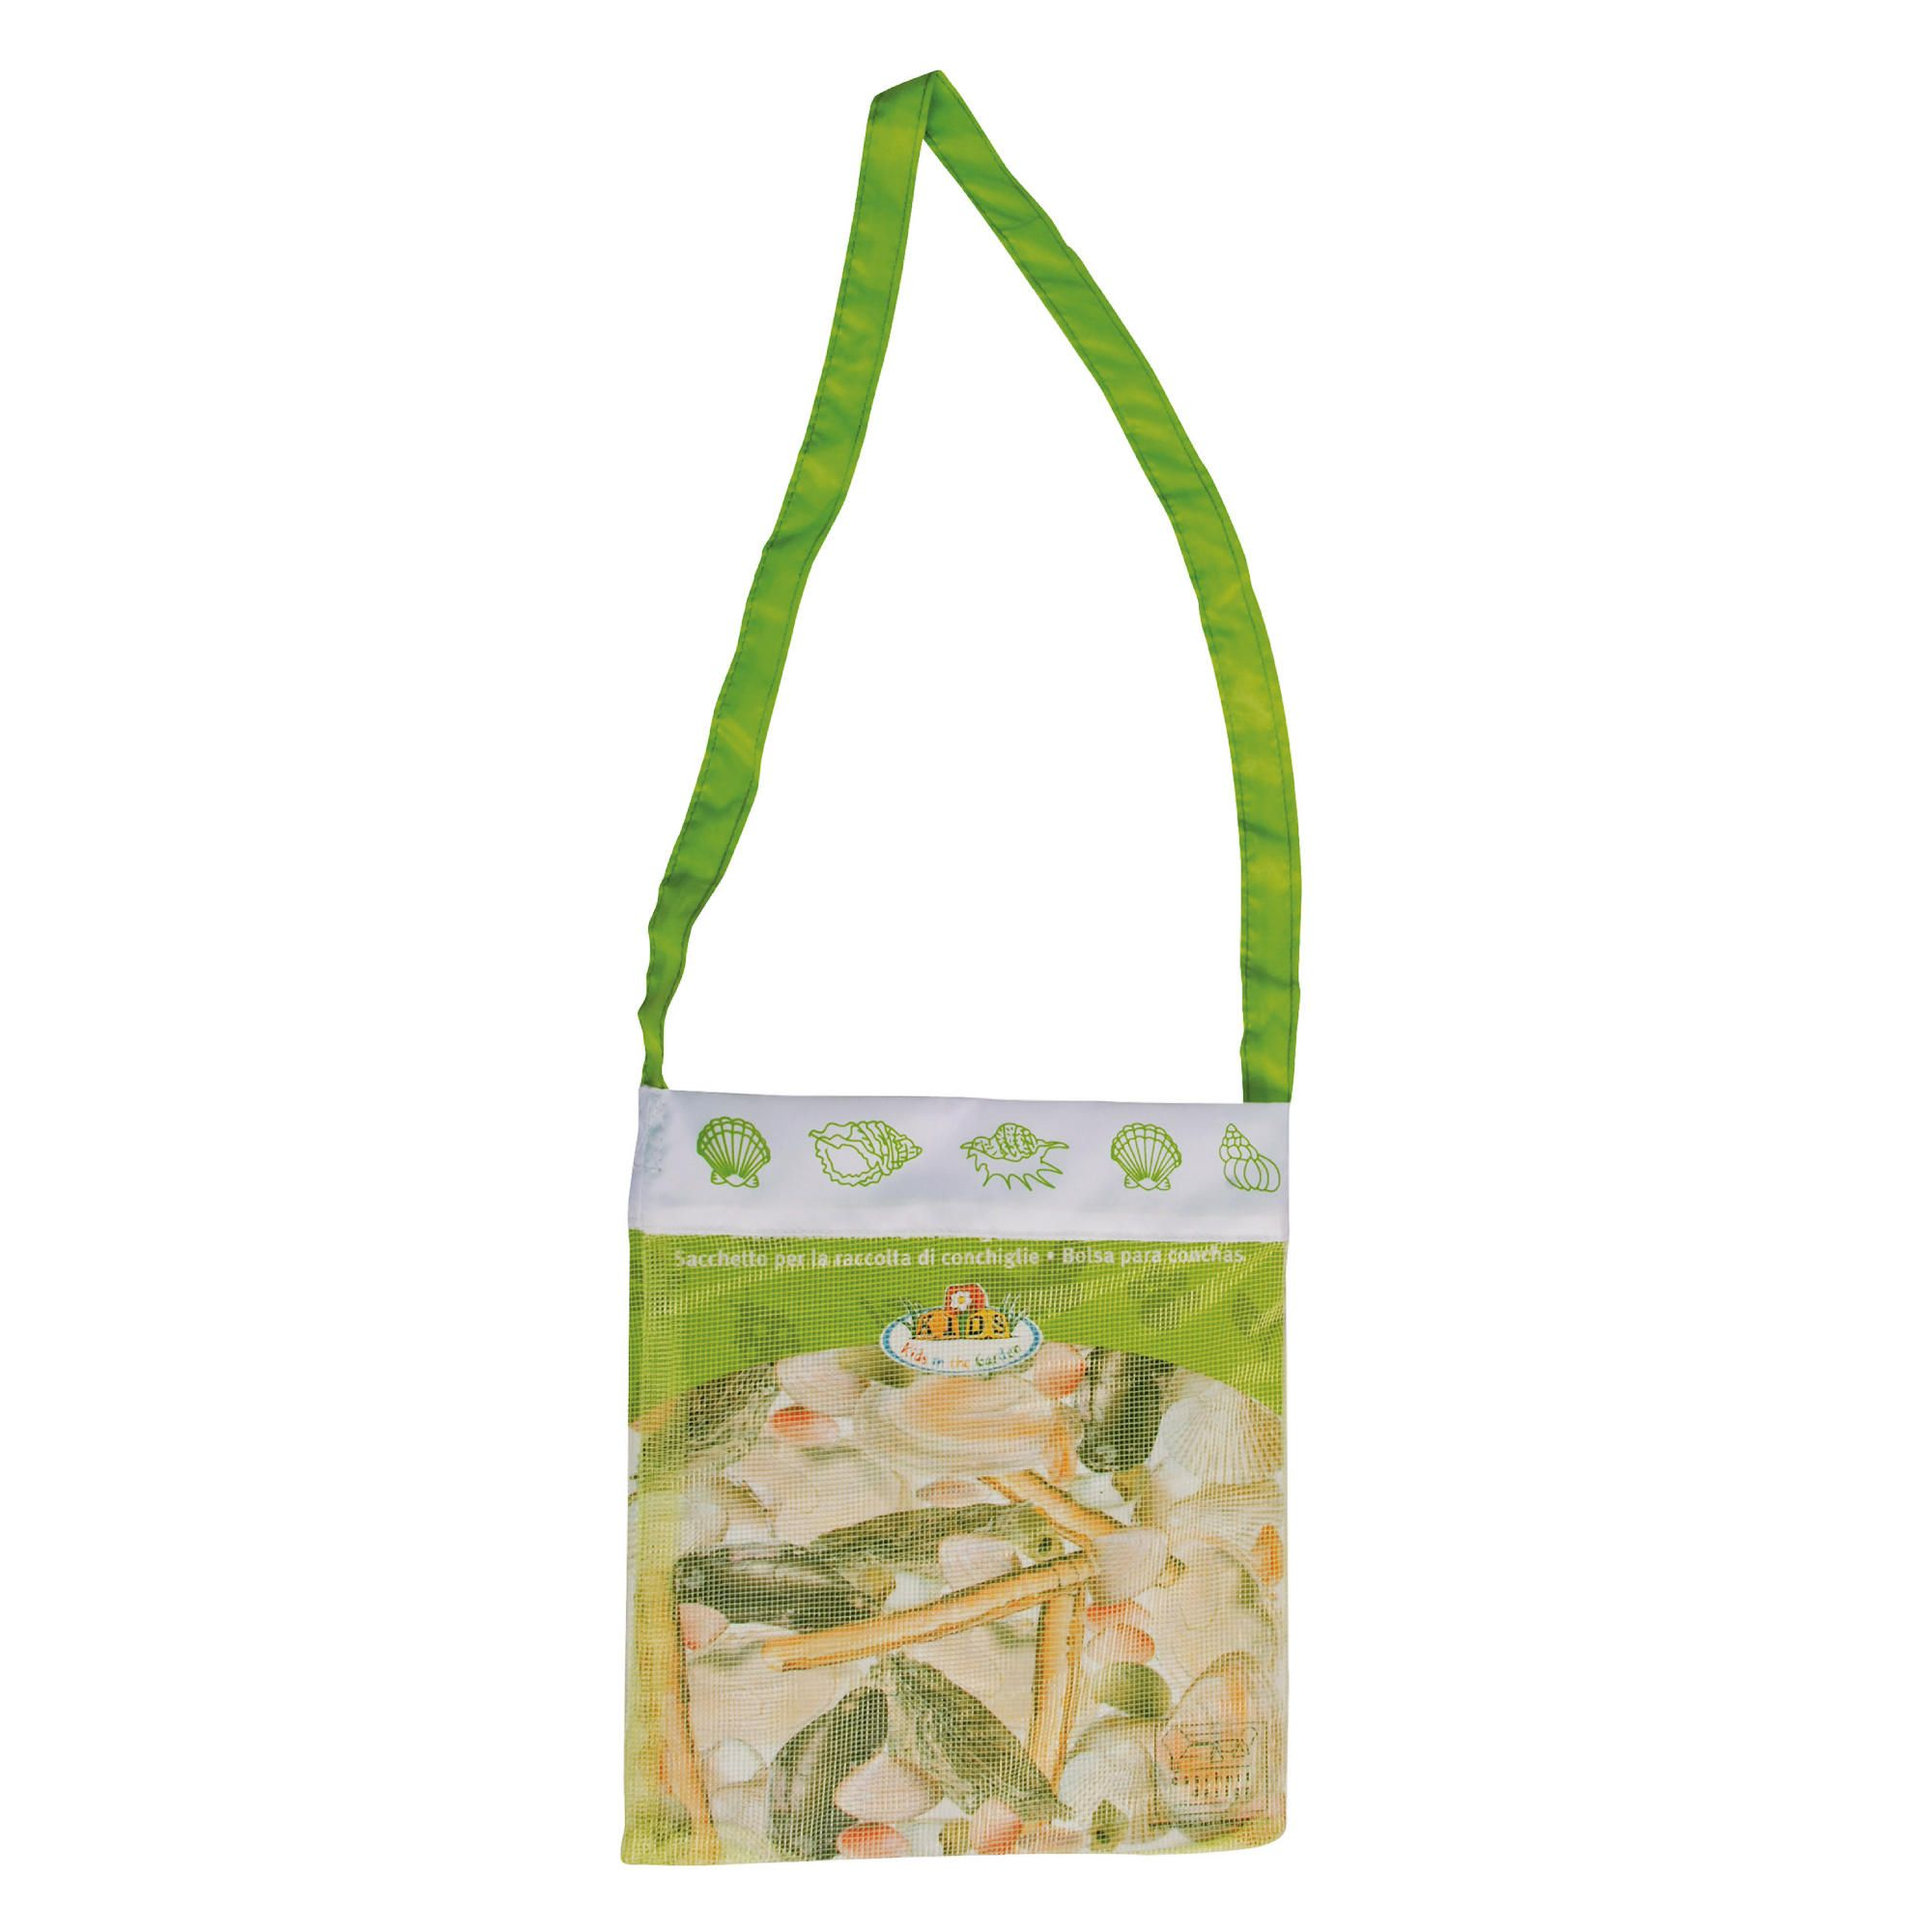 Offerta: Fallen Fruits Shell Bag